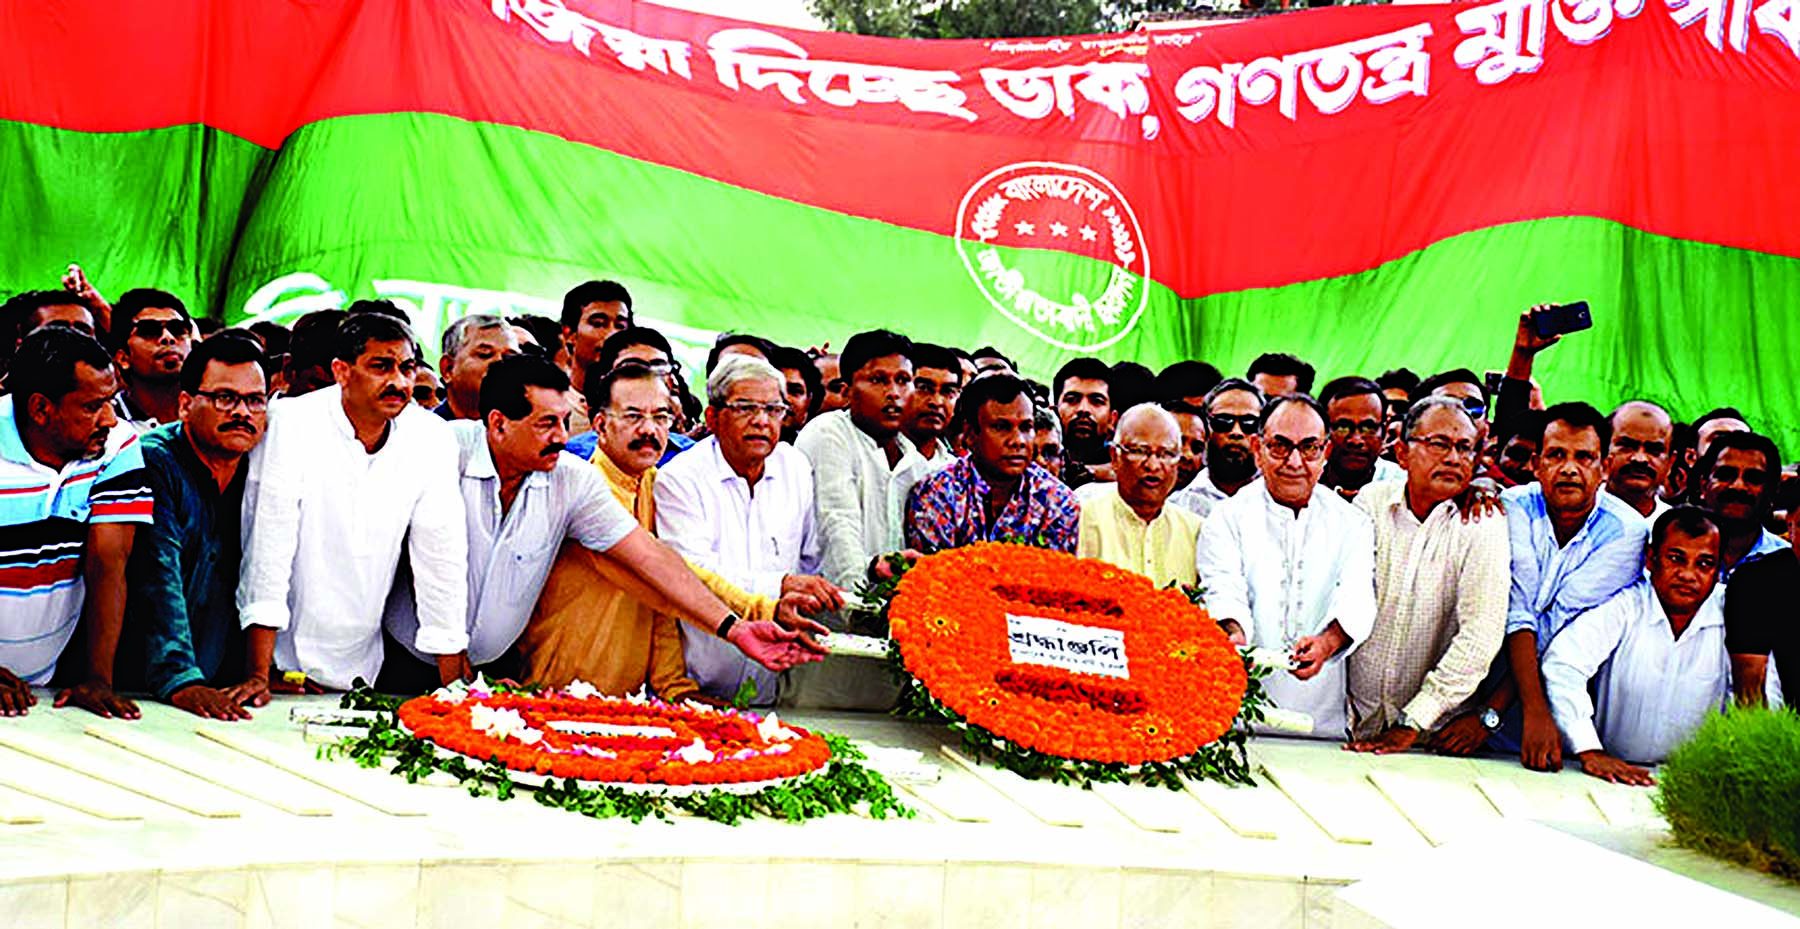 BNP Secretary General Mirza Fakhrul Islam Alamgir along with newly elected office executives of Jatiyatabadi Chhatra Dal placing floral wreaths on the mazar of Shaheed President Ziaur Rahman in the city on Saturday.